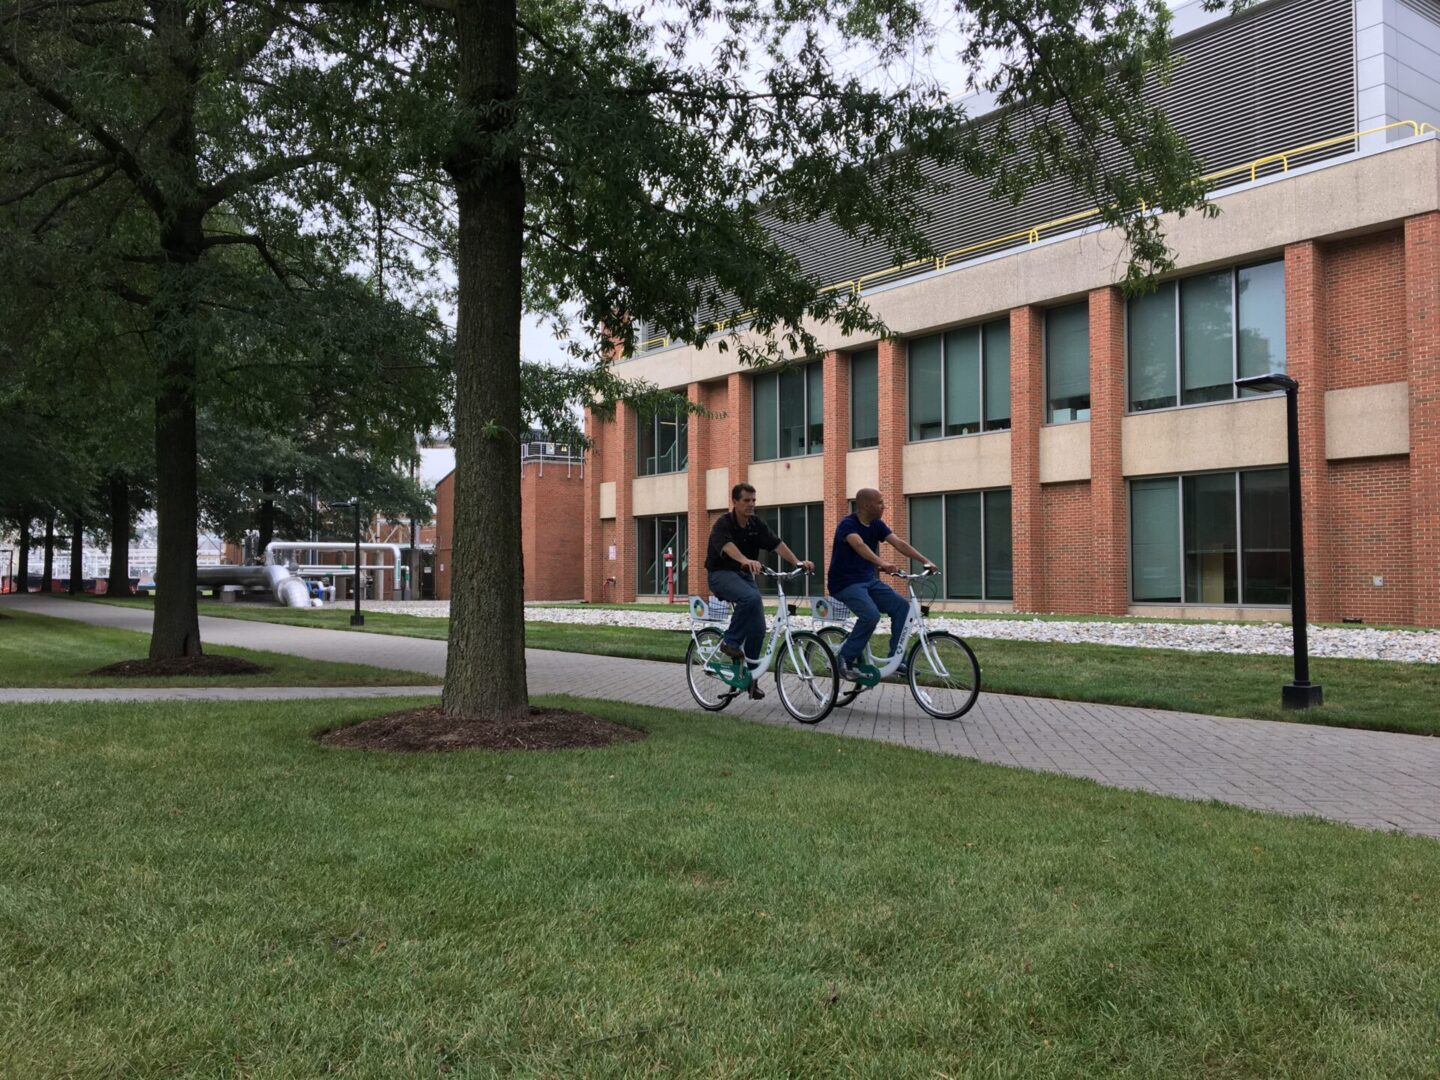 Two men riding a bicycling on campus grounds